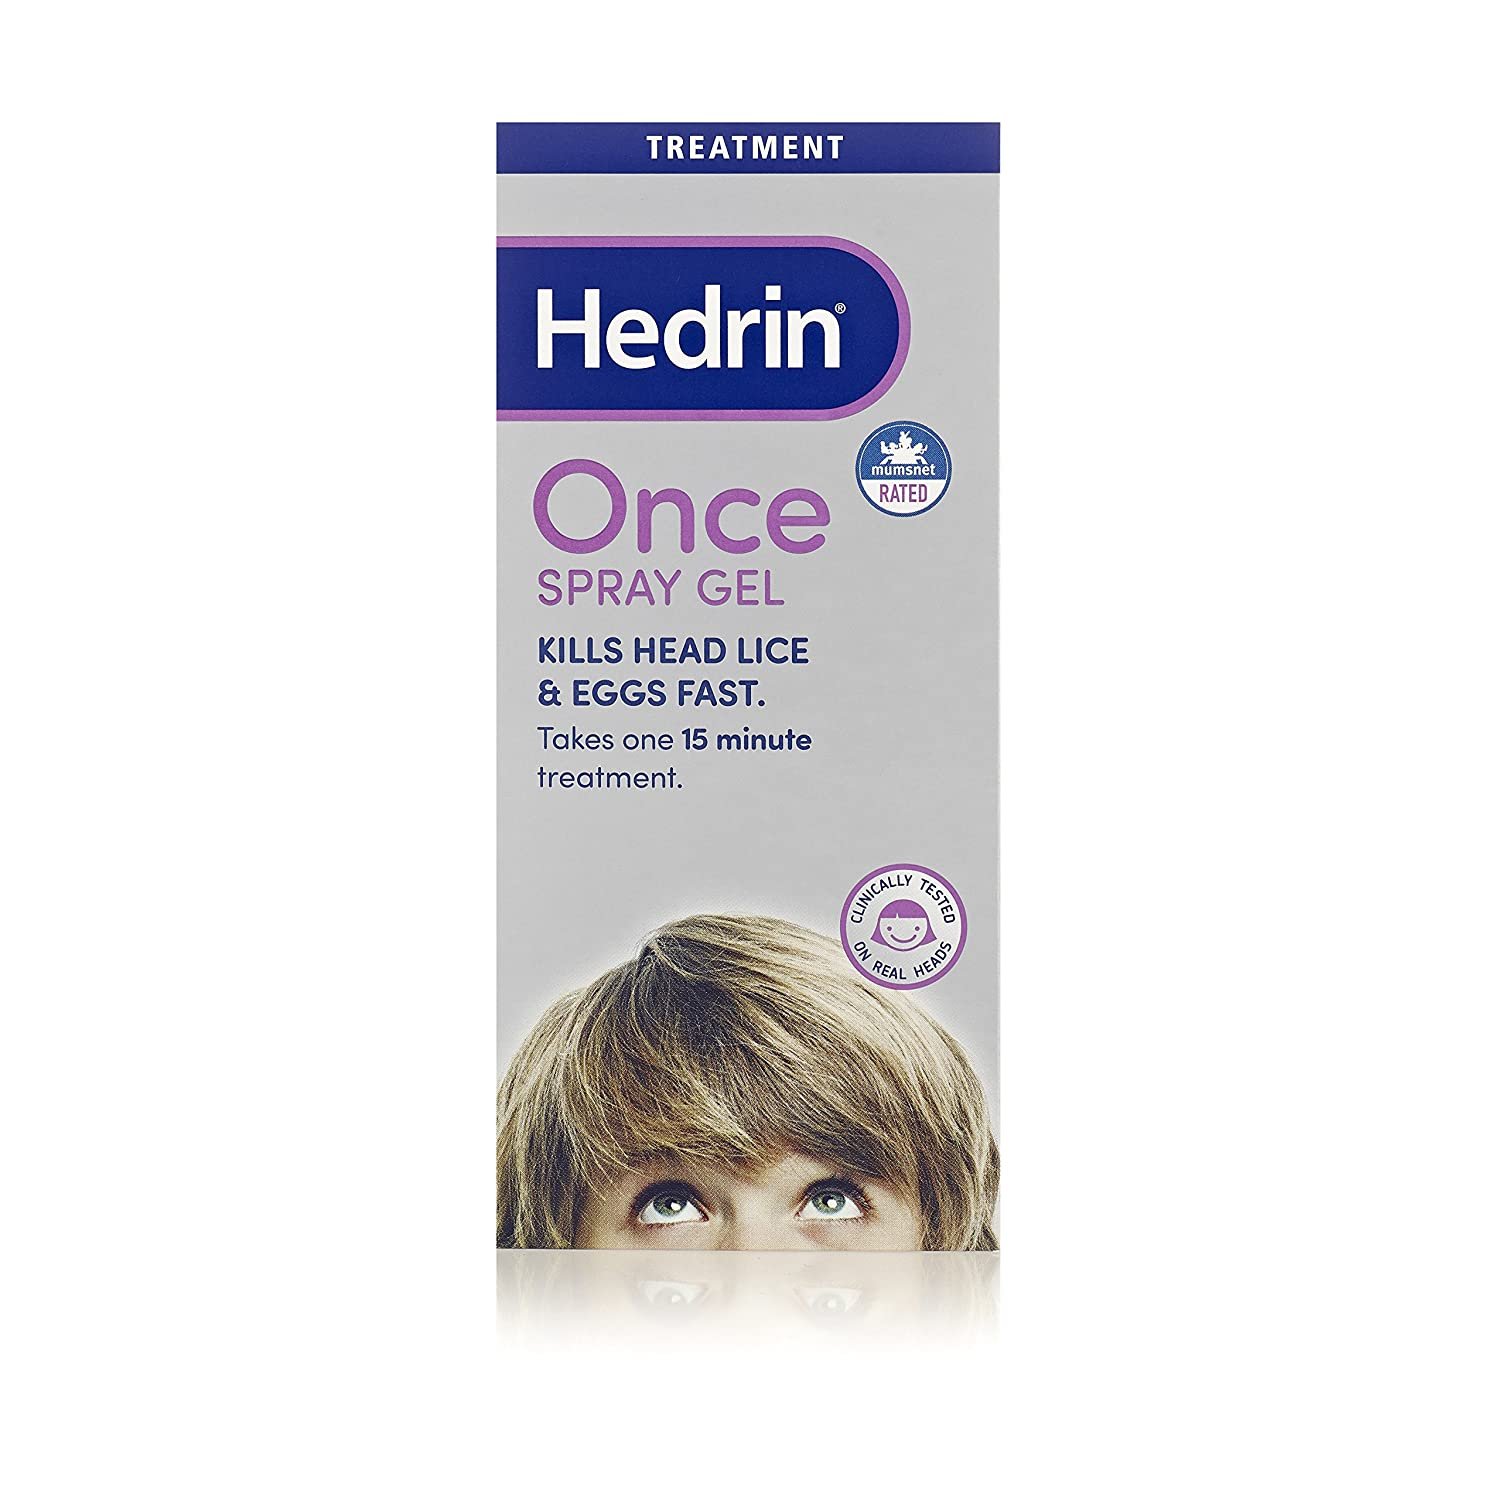 Hedrin Once Spray Gel, 100 ml T&R 5011309590111